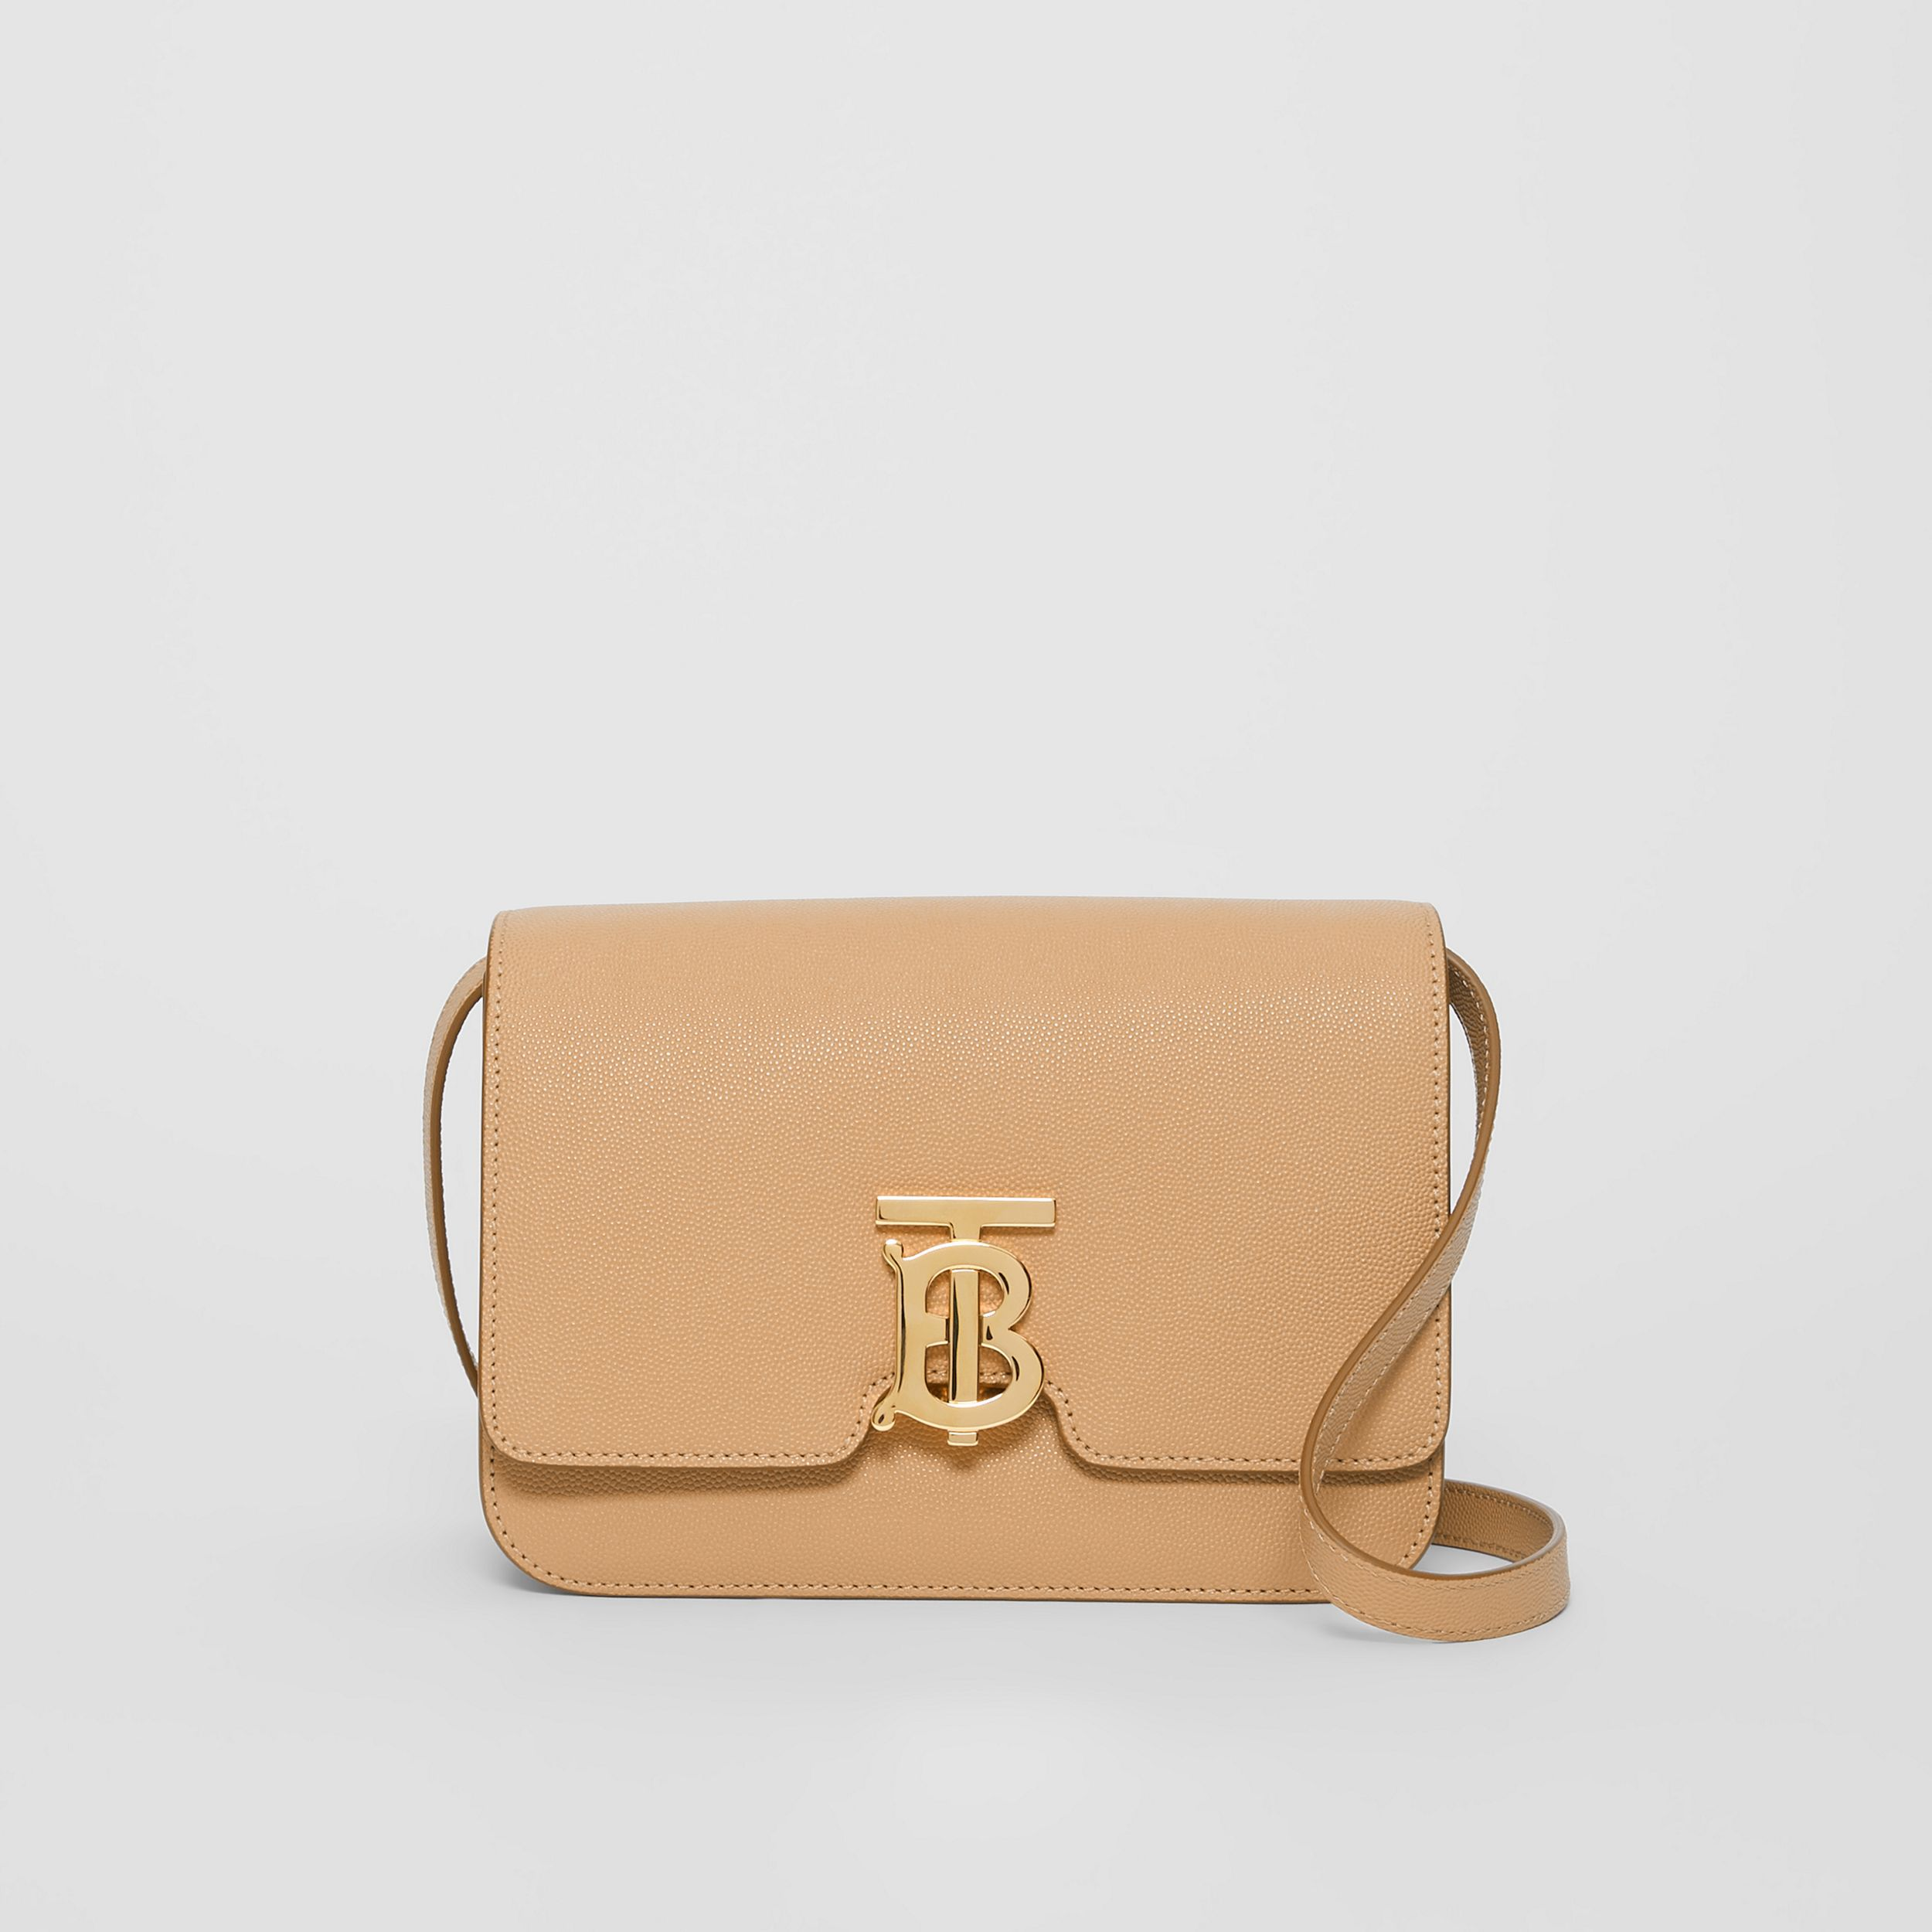 Small Grainy Leather TB Bag in Archive Beige - Women | Burberry Australia - 1